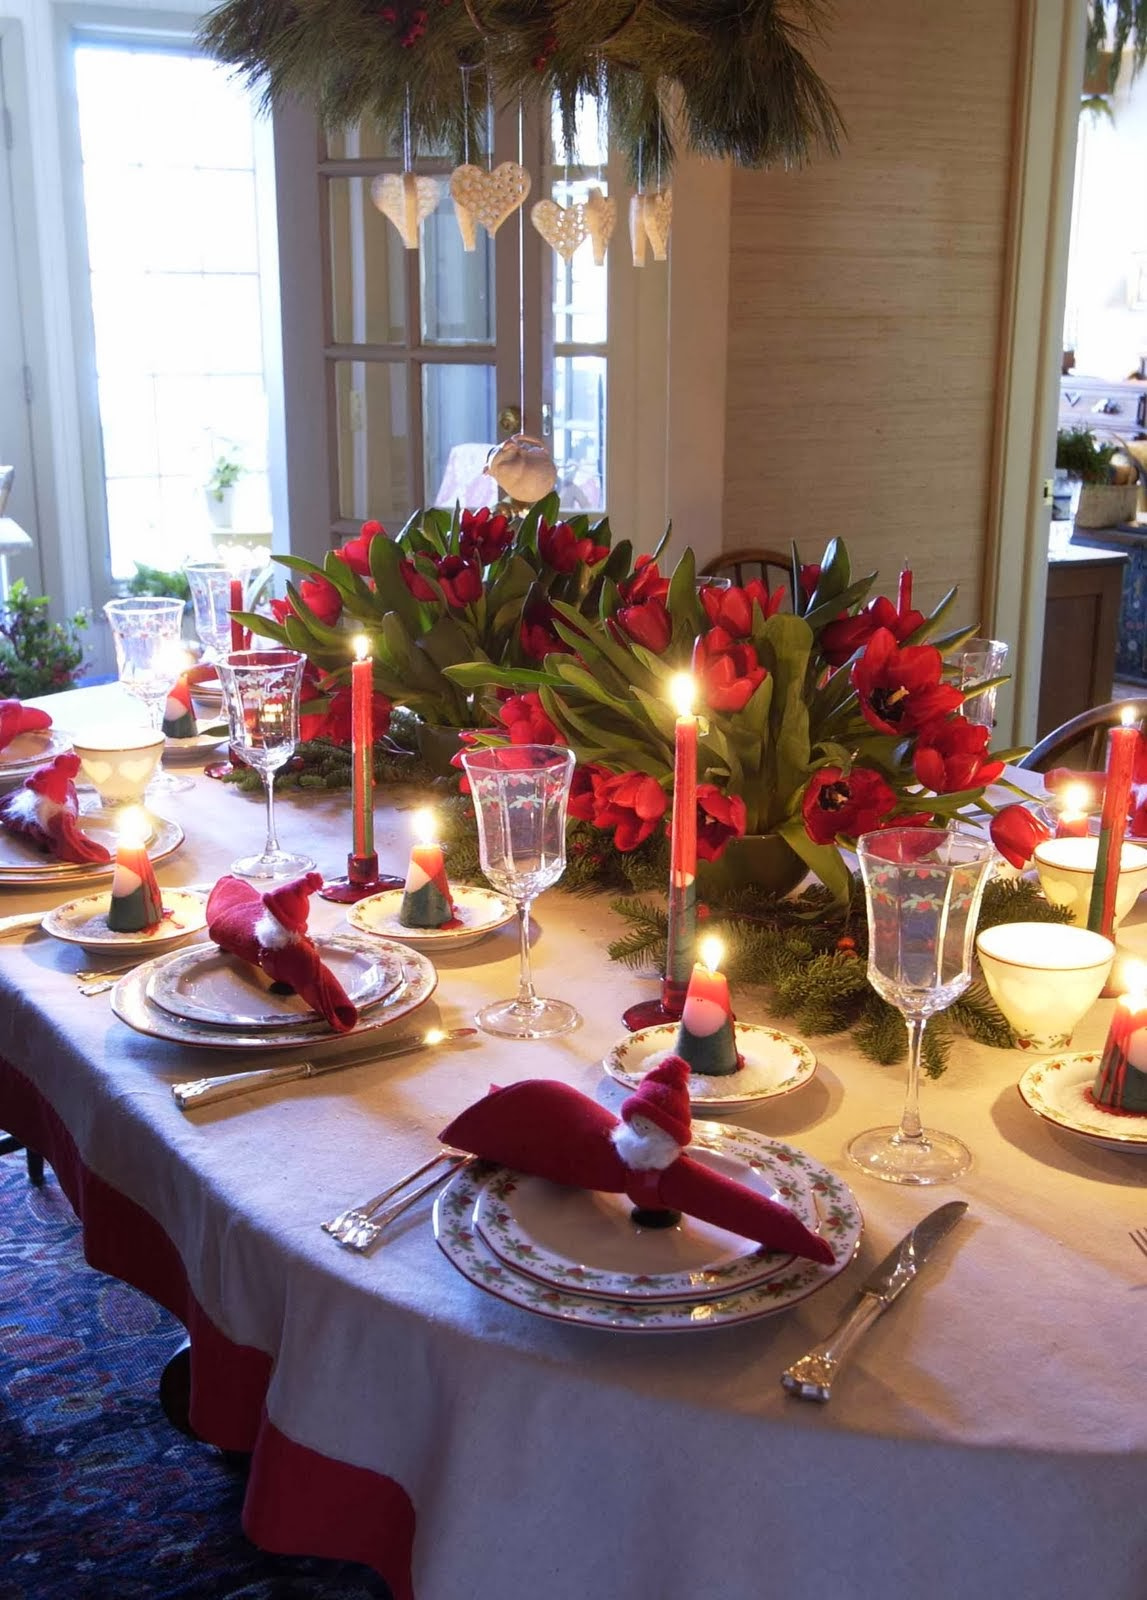 Decoration and Ideas: Ideas on how to Decorate a Christmas Table